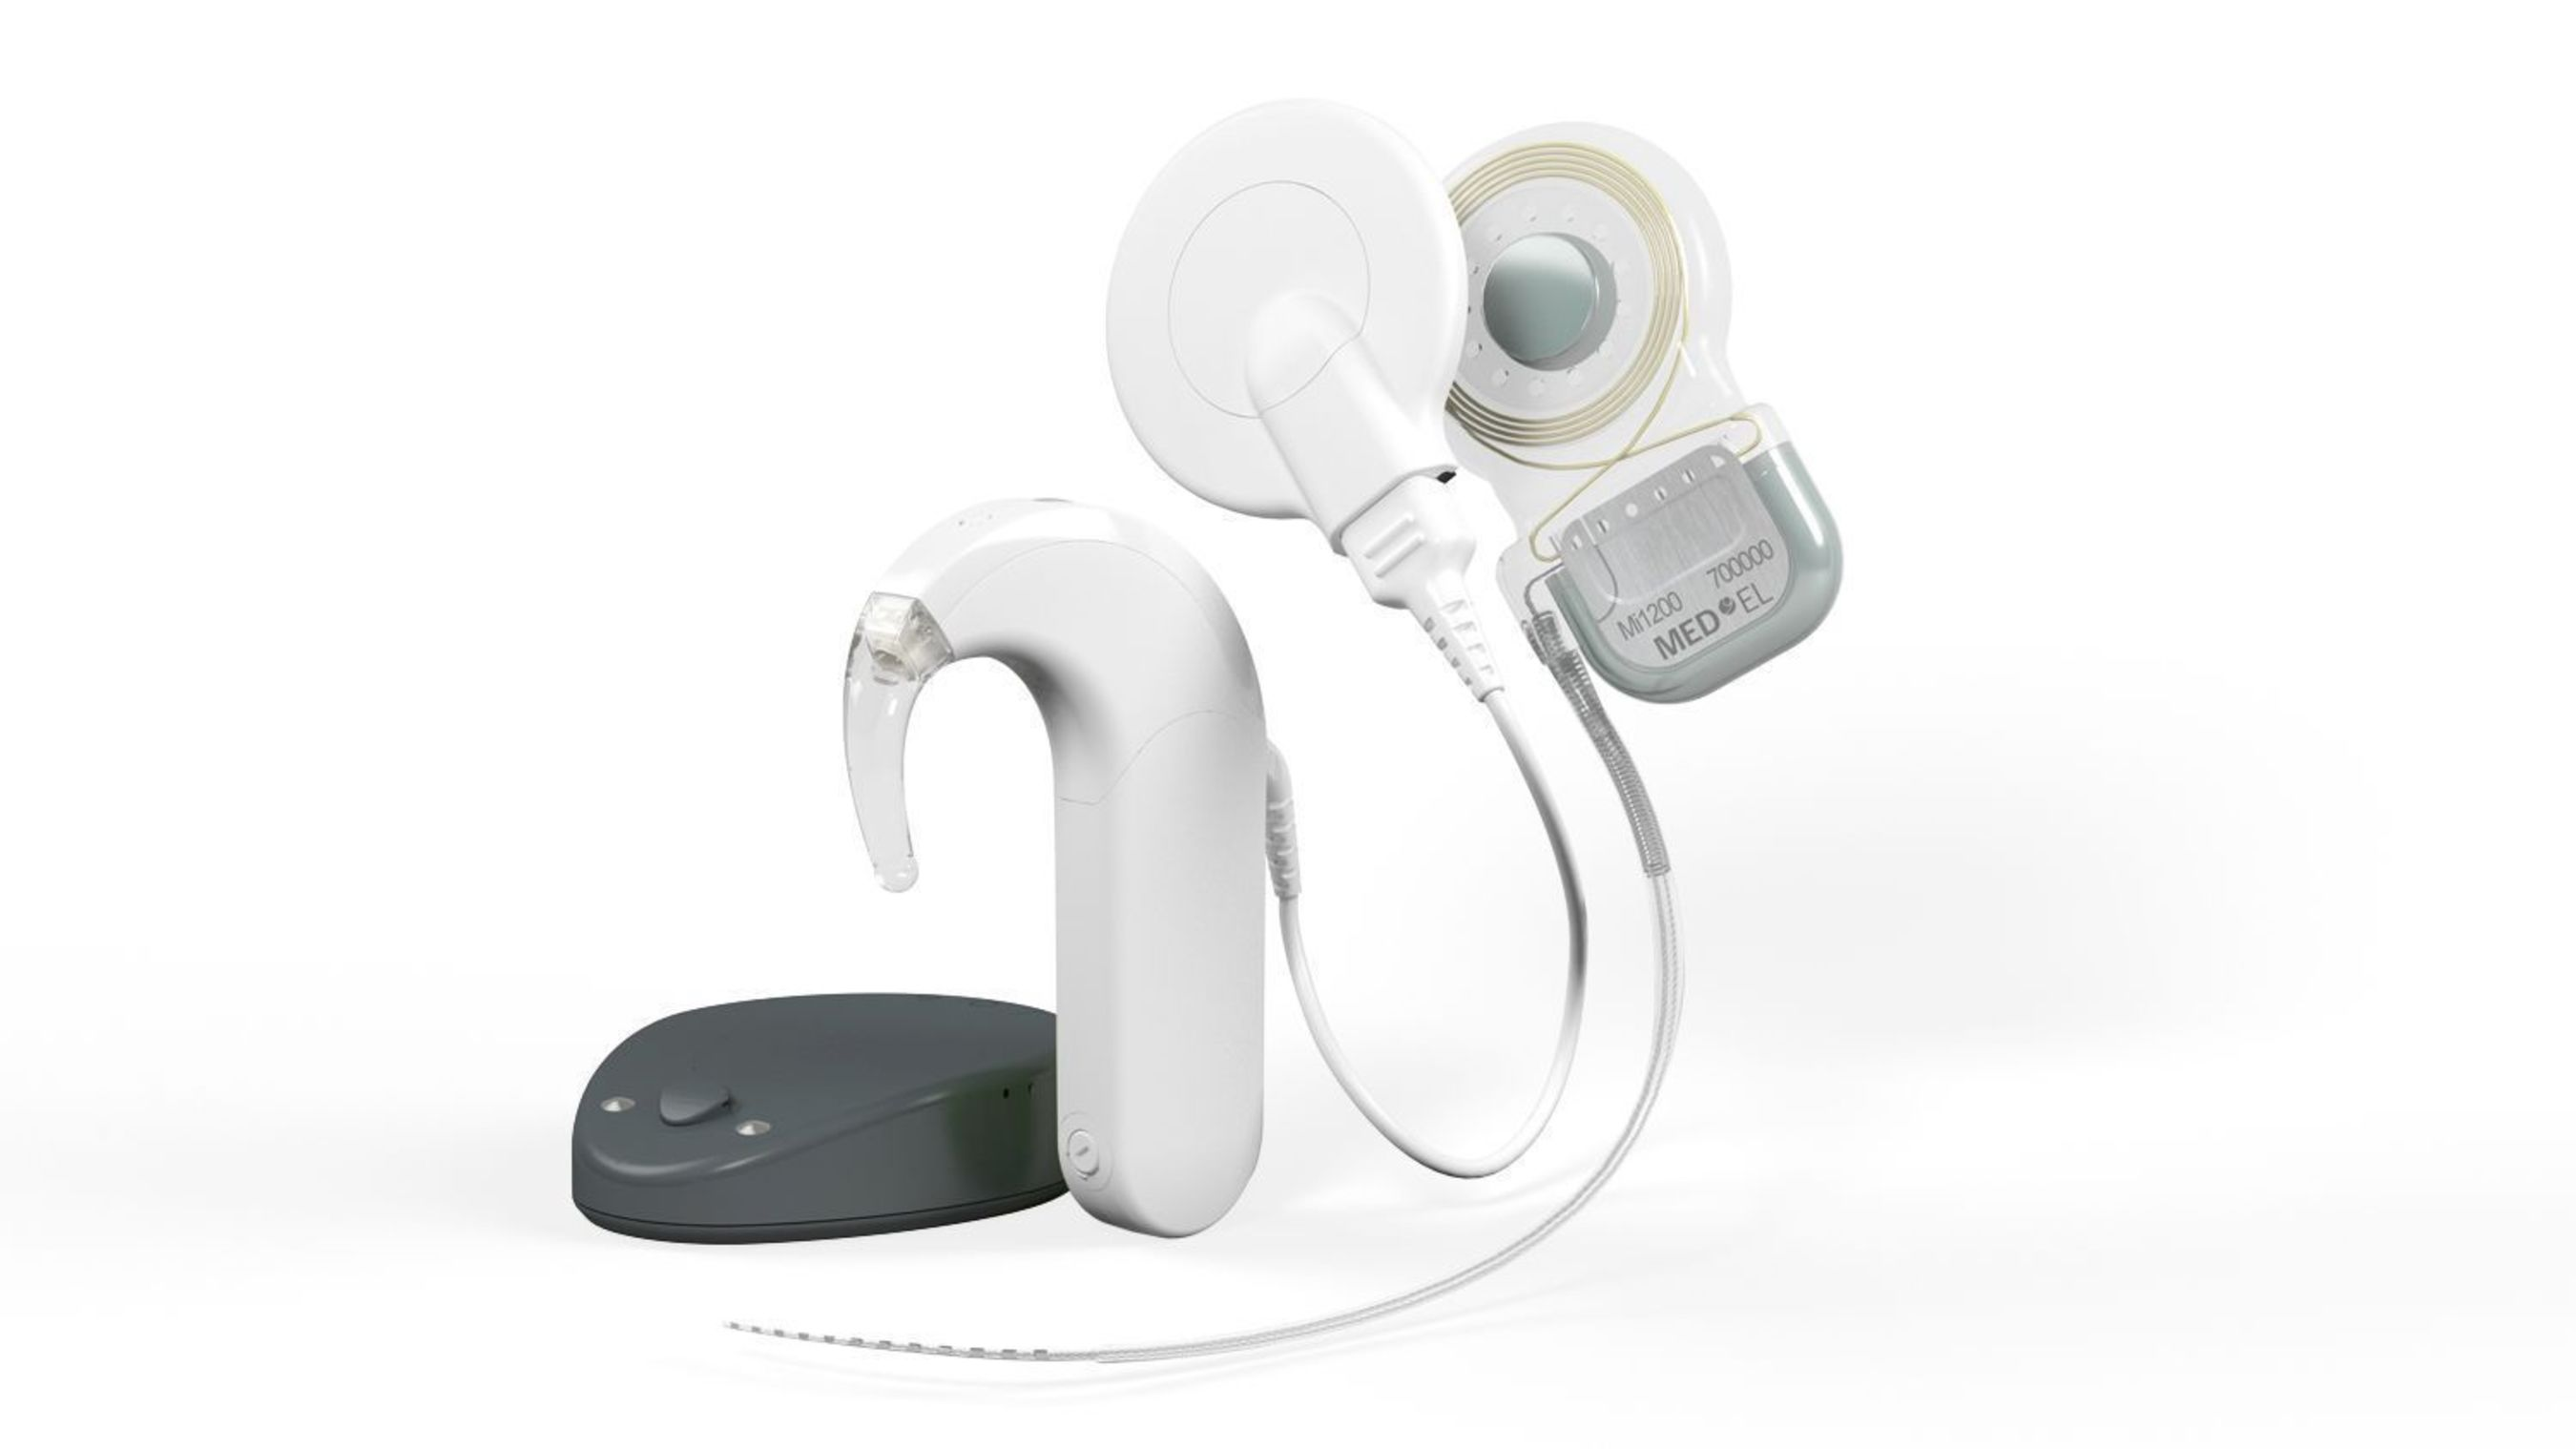 The SYNCHRONY implant system is MED-EL's latest cochlear implant system, offering the greatest MRI safety possibilities currently available on the cochlear implant market. The cochlear implant was, and remains, the first replacement of a human sense: the sense of hearing. (PRNewsFoto/MED-EL)